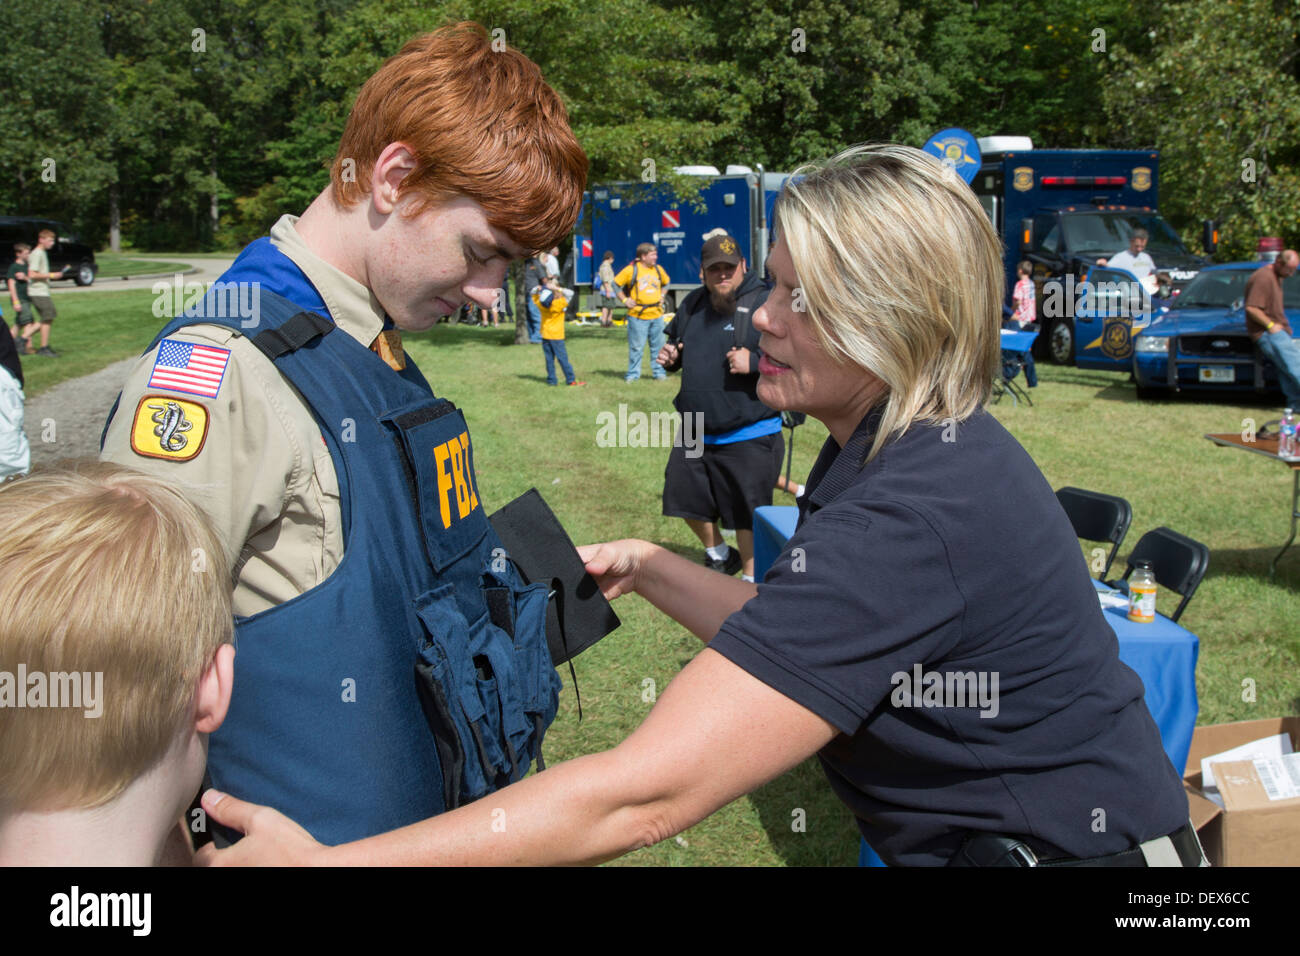 An FBI agent helps a Boy Scout try on a bulletproof vest during a Scout gathering at a suburban Detroit park. Stock Photo